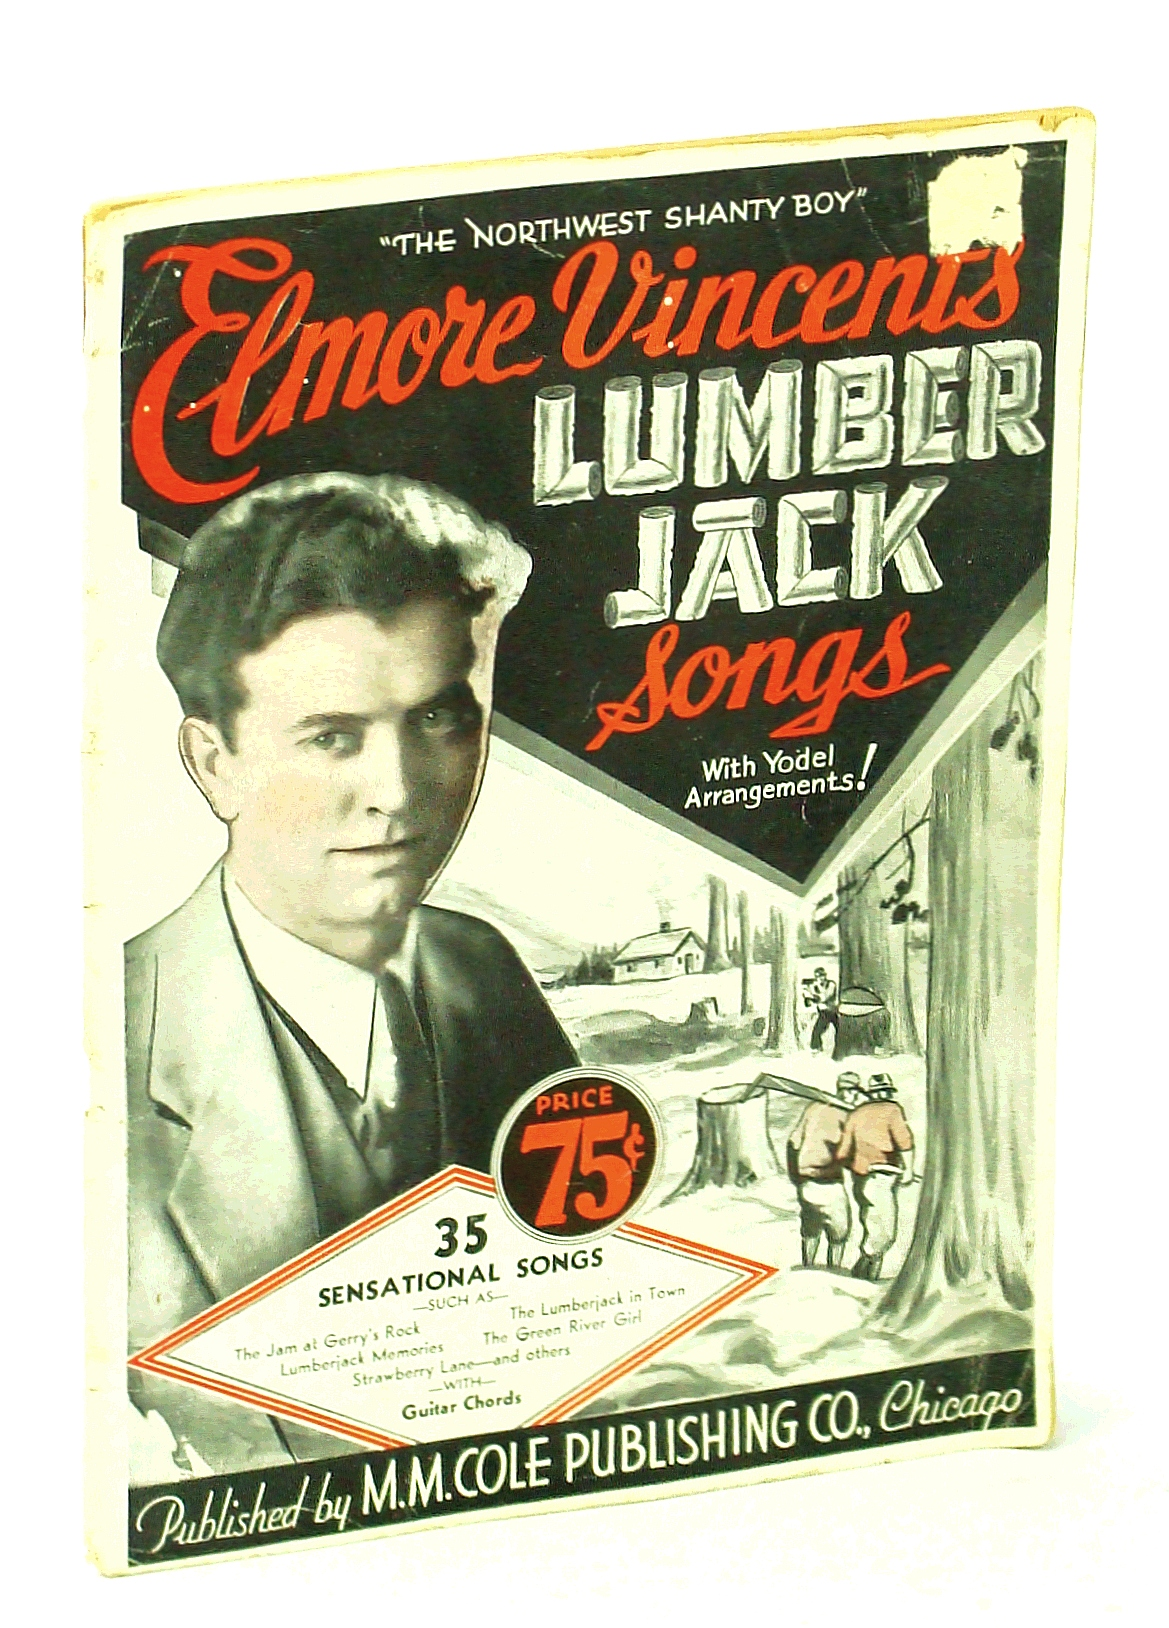 Image for Elmore Vincent's Lumber Jack Songs. With Yodel Arrangements! .